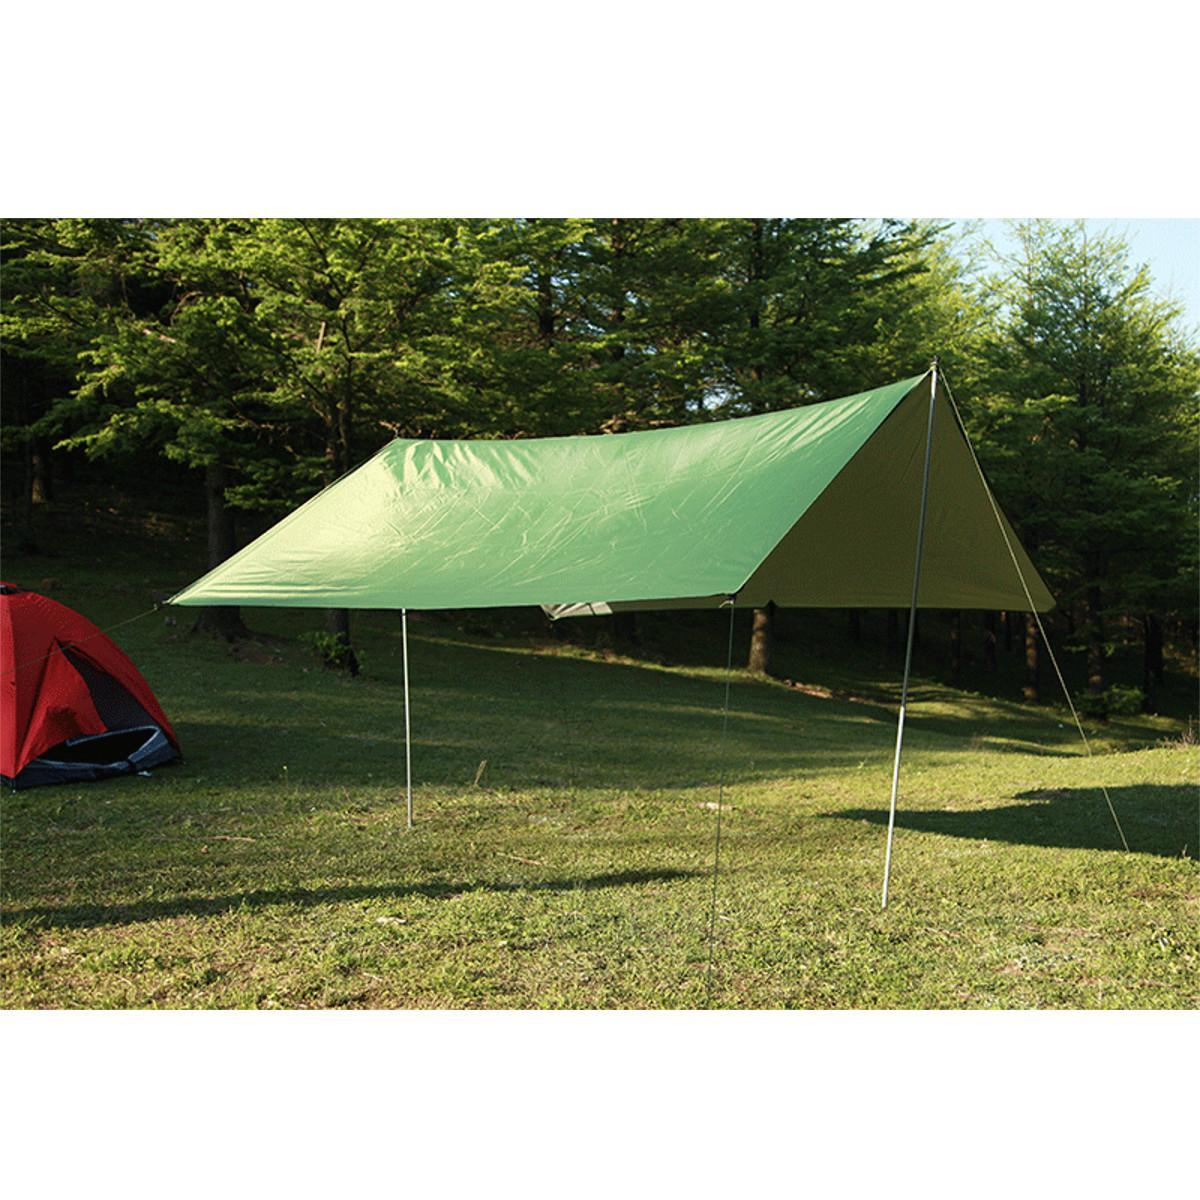 Wholesale 3mx3m Waterproof Sun Shelter Tarp Survival Camping Climbing  Outdoor Tent Patio Sun Shade Awning Canopy Garden Tent Shade Coleman Tent  Cheap Tent ...